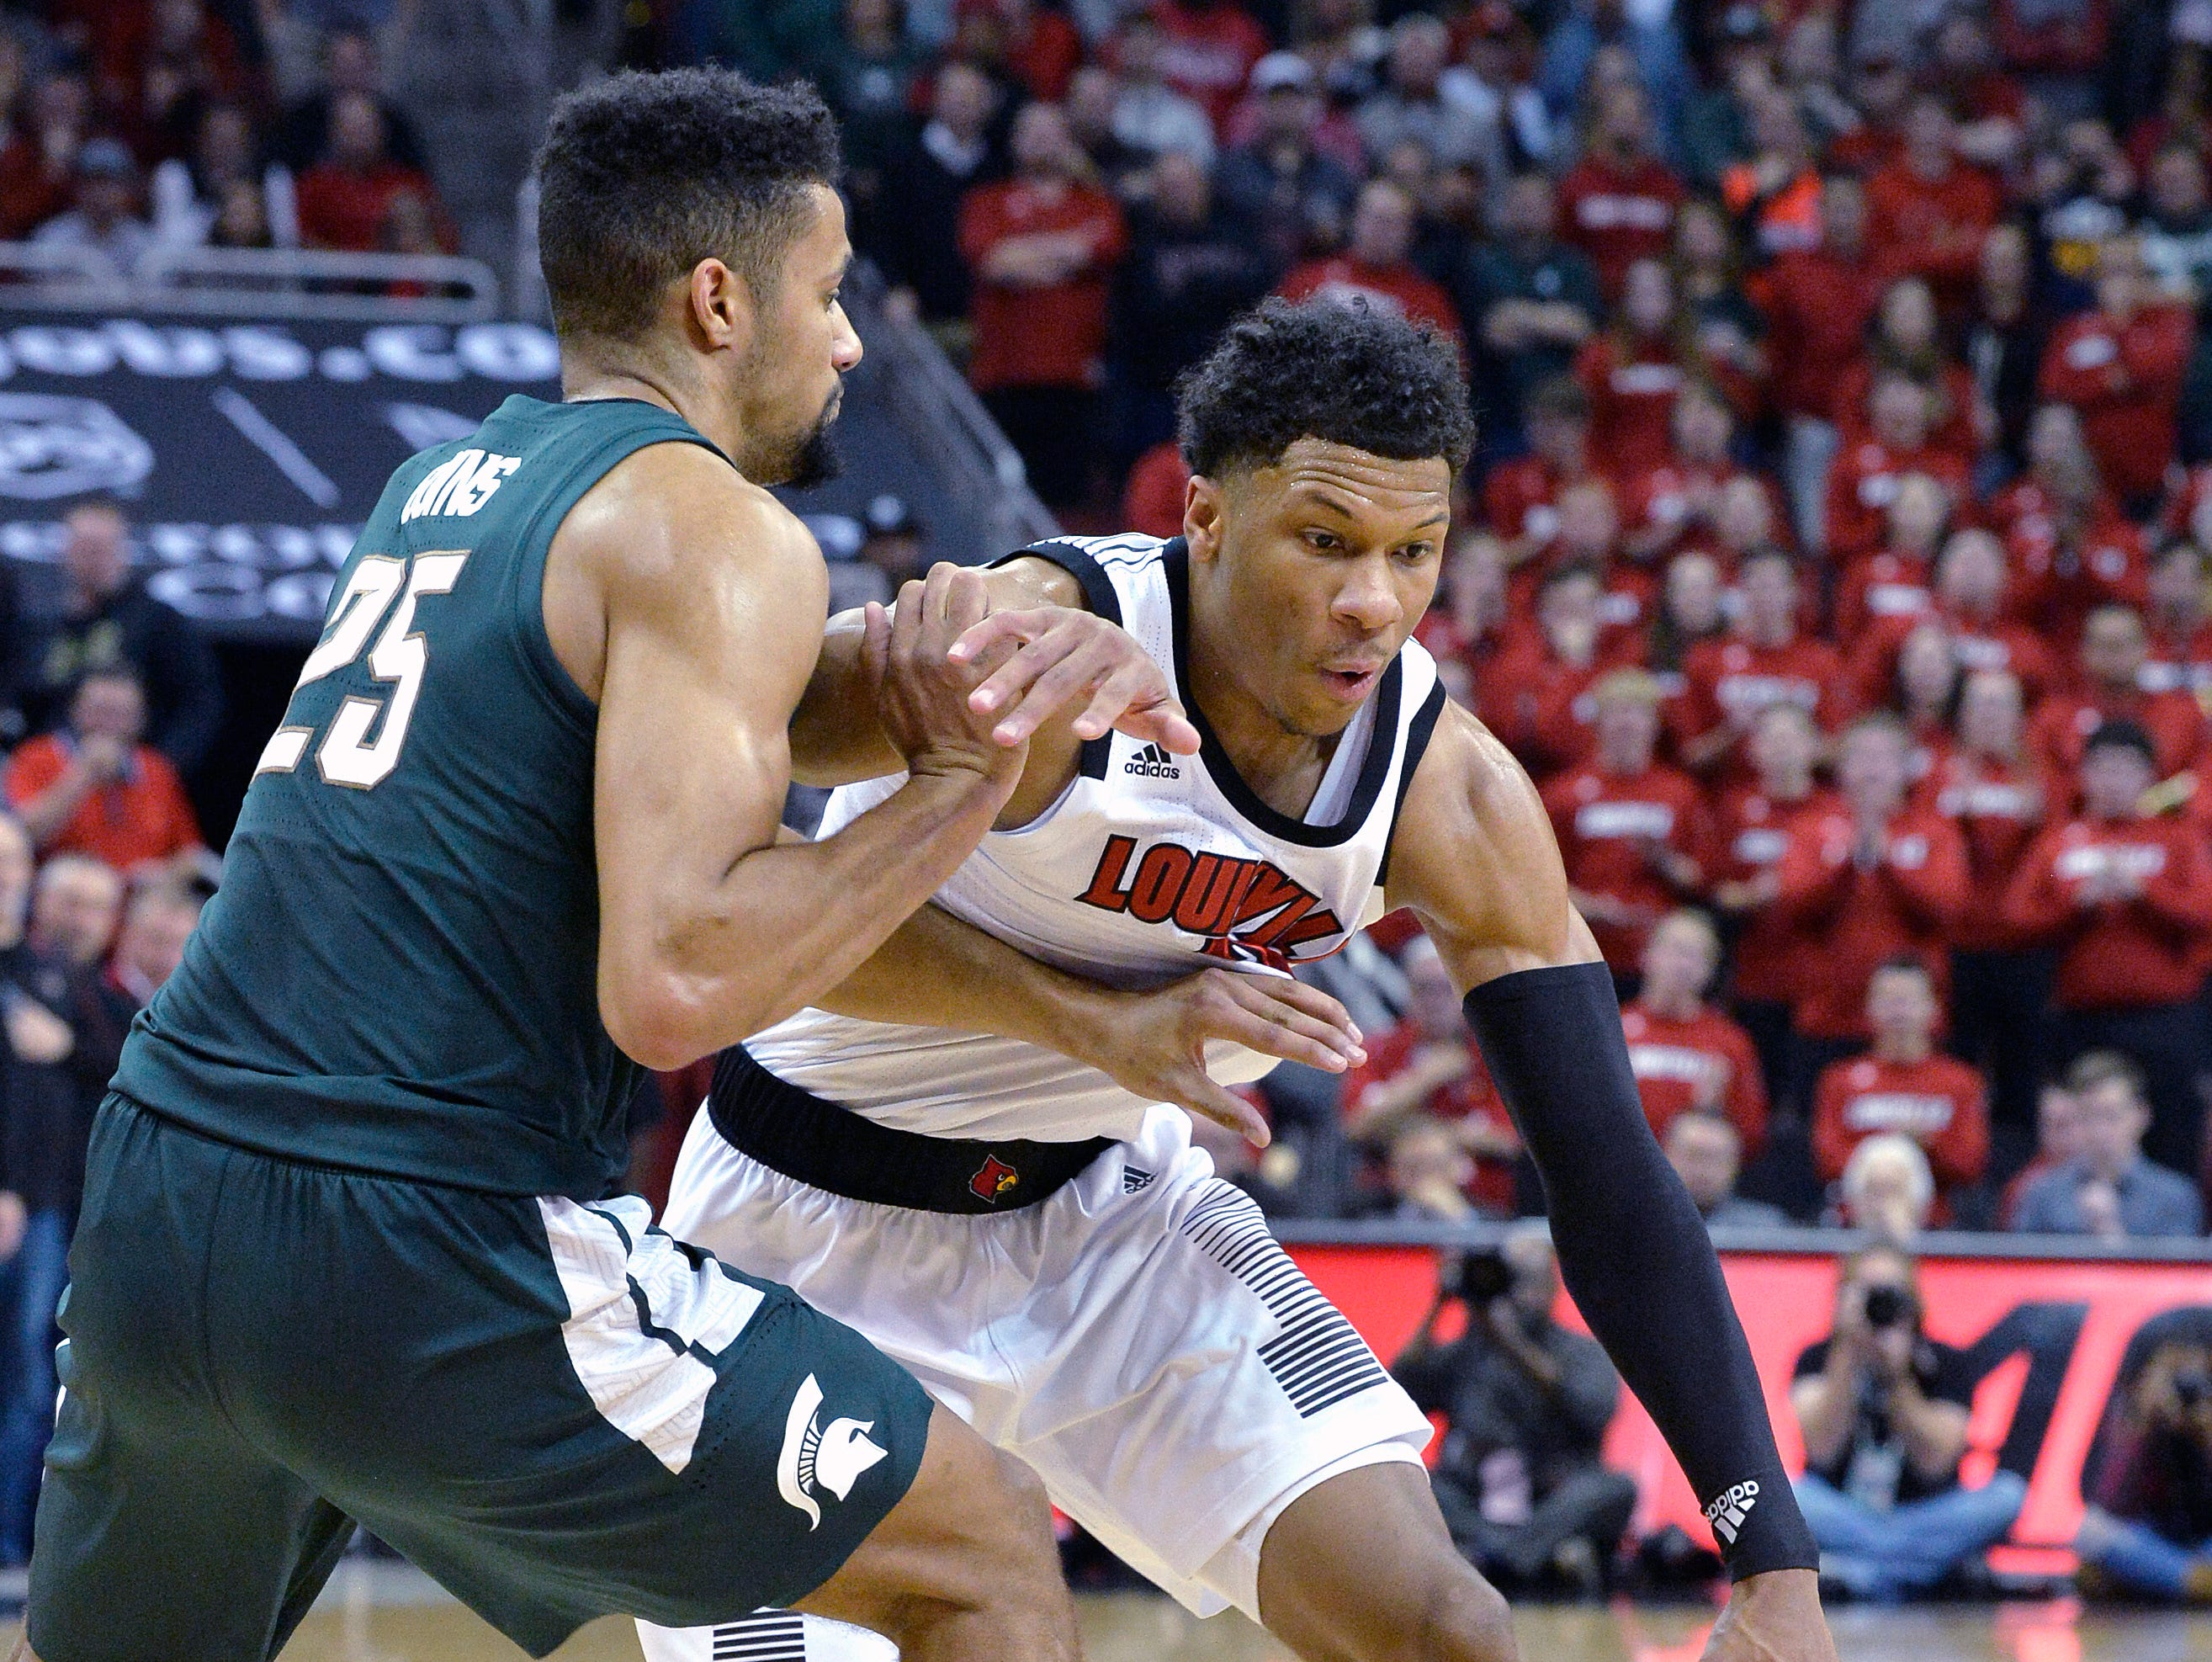 Louisville forward Dwayne Sutton (24) attempts to drive around the defense of Michigan State forward Kenny Goins (25) during the second half.